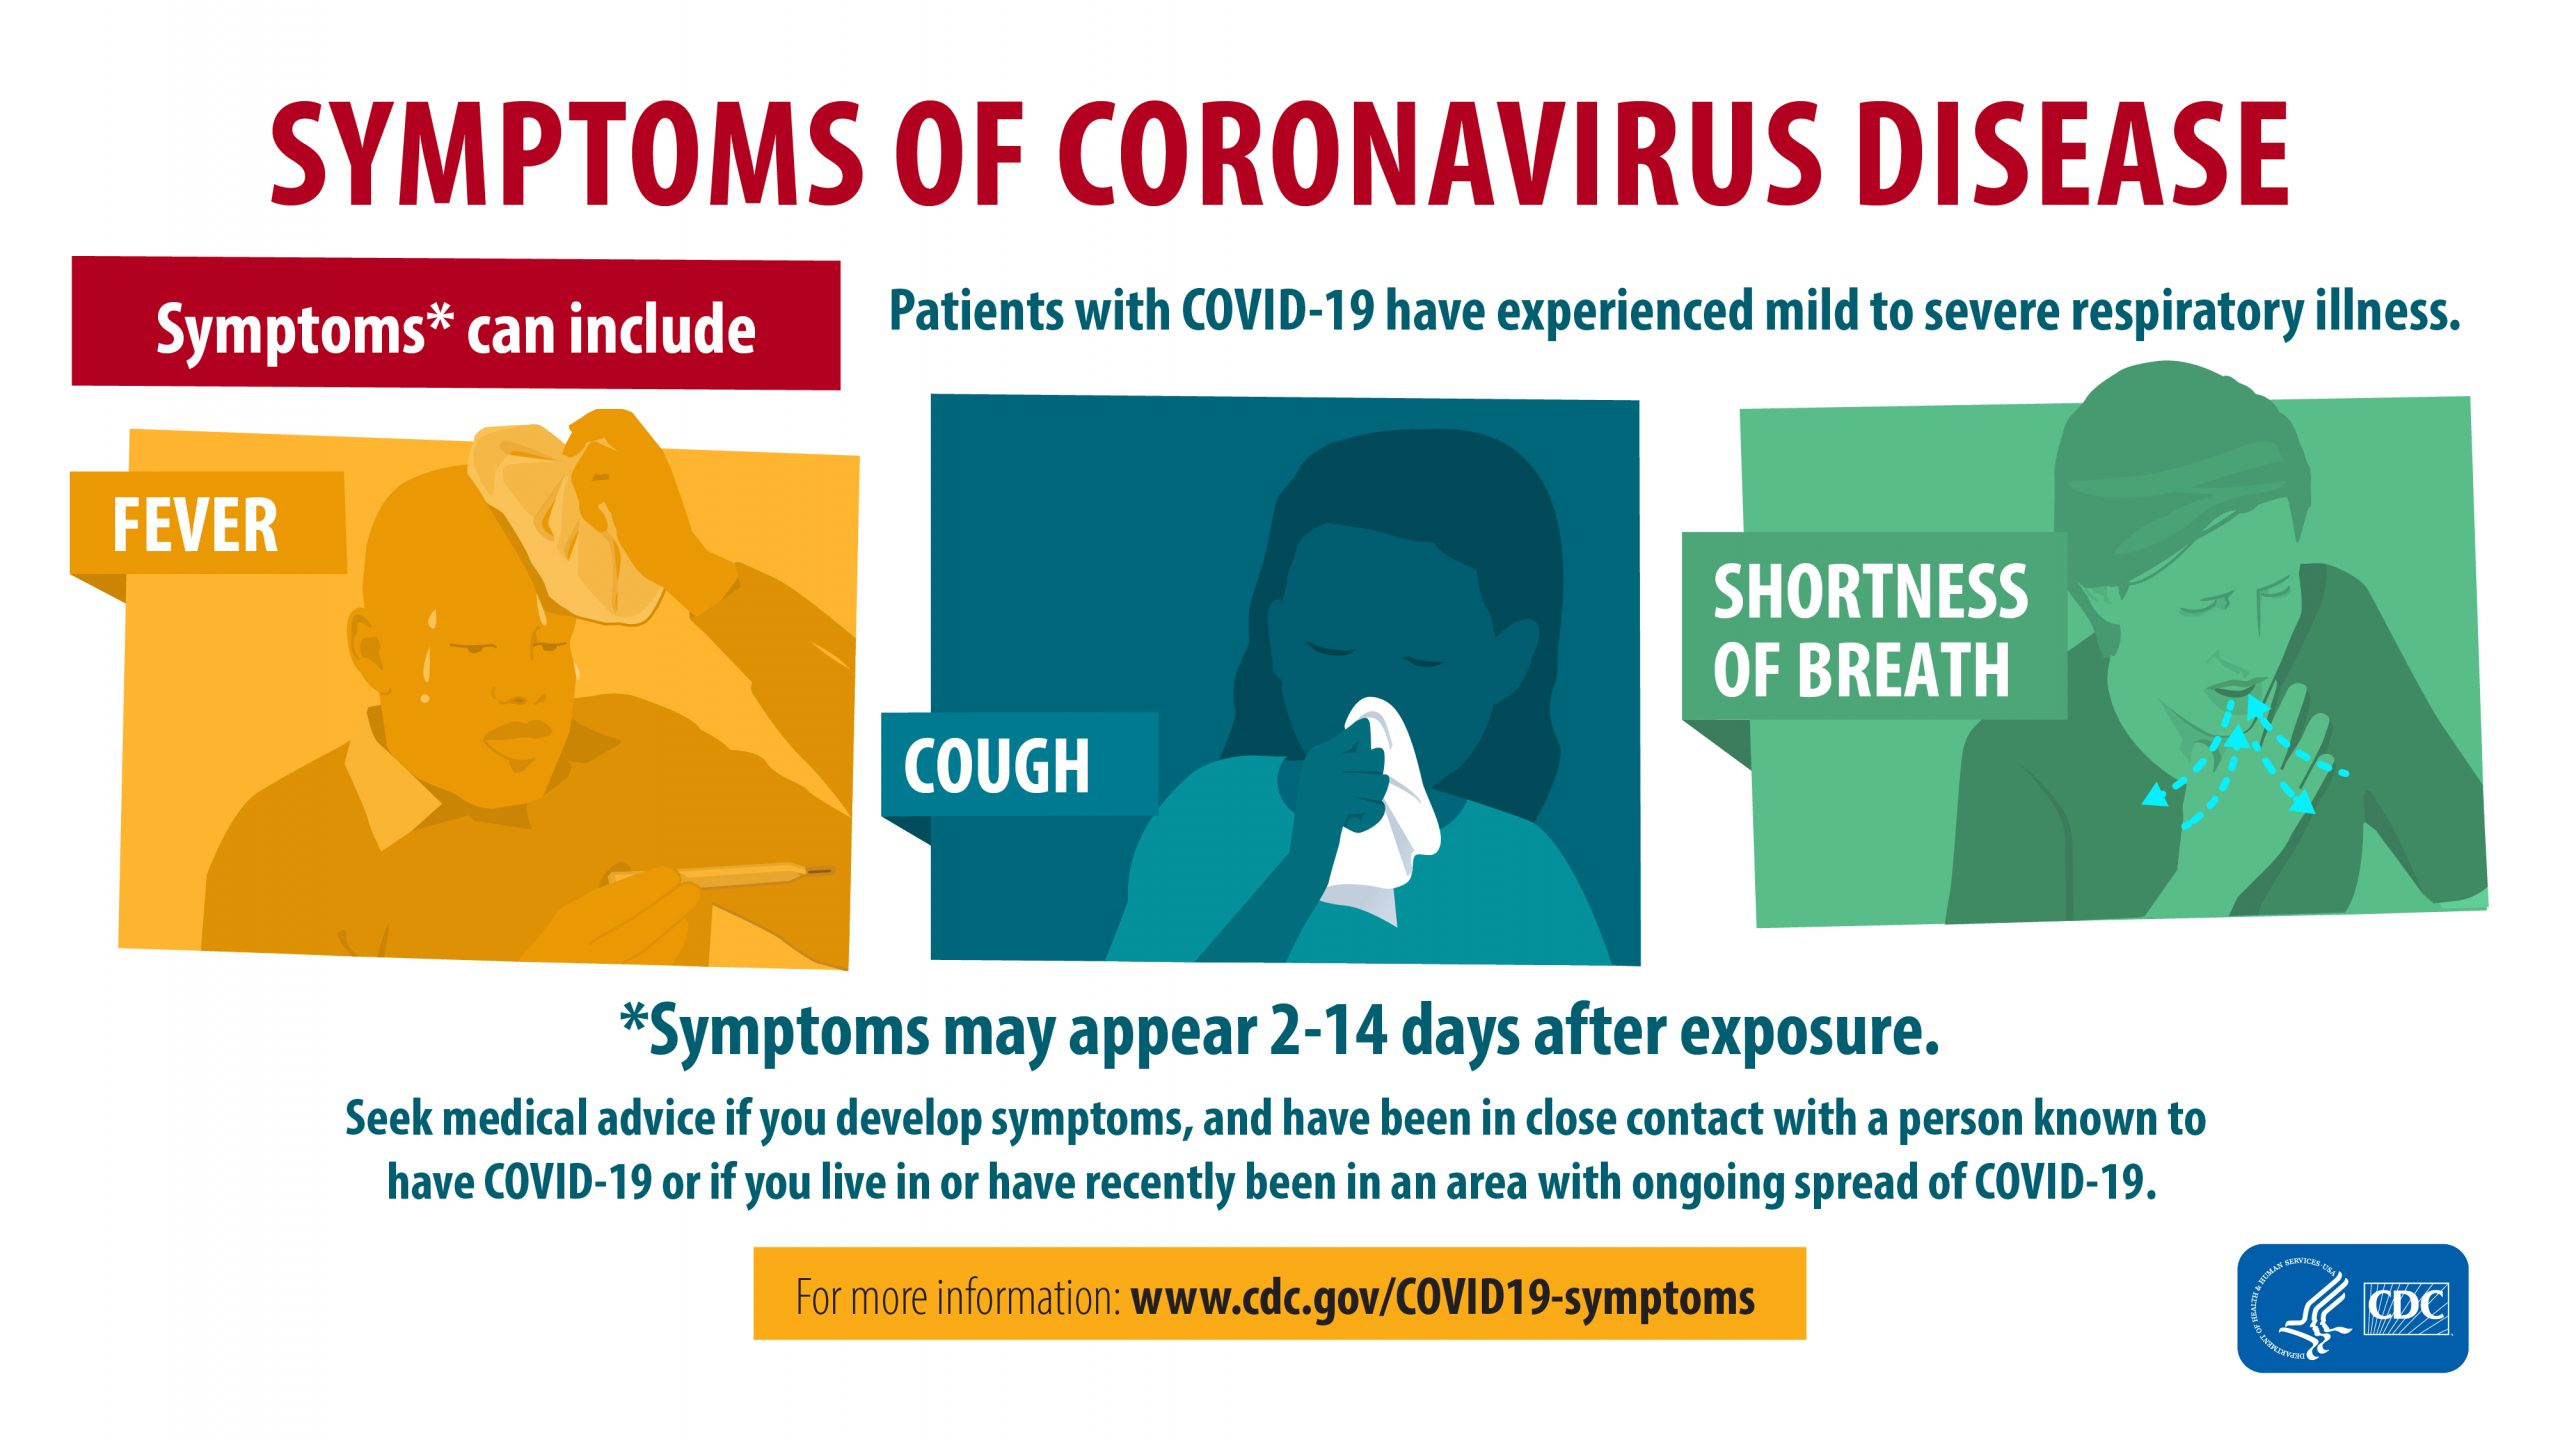 COVID-19 Symptoms Image For Your Digital Signage